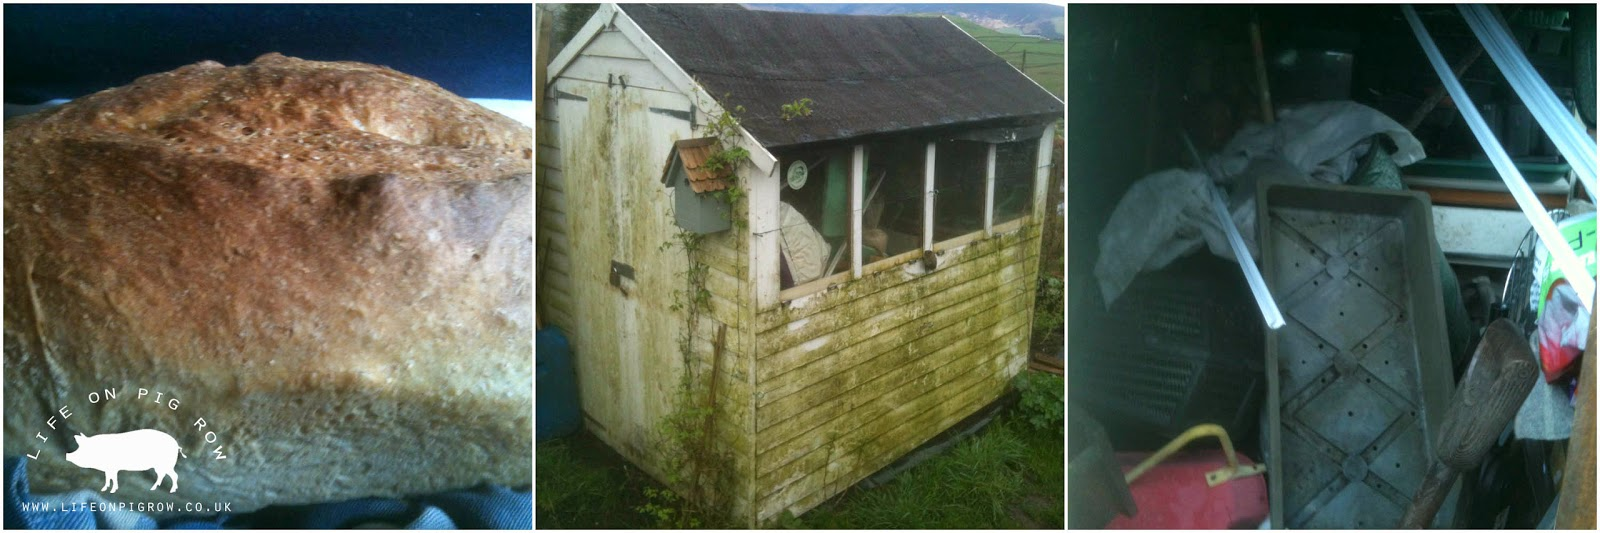 Share your bread photos and shed photos this week at https://www.facebook.com/lifeonpigrow. Let's celebrate good bread and our collapsing sheds!